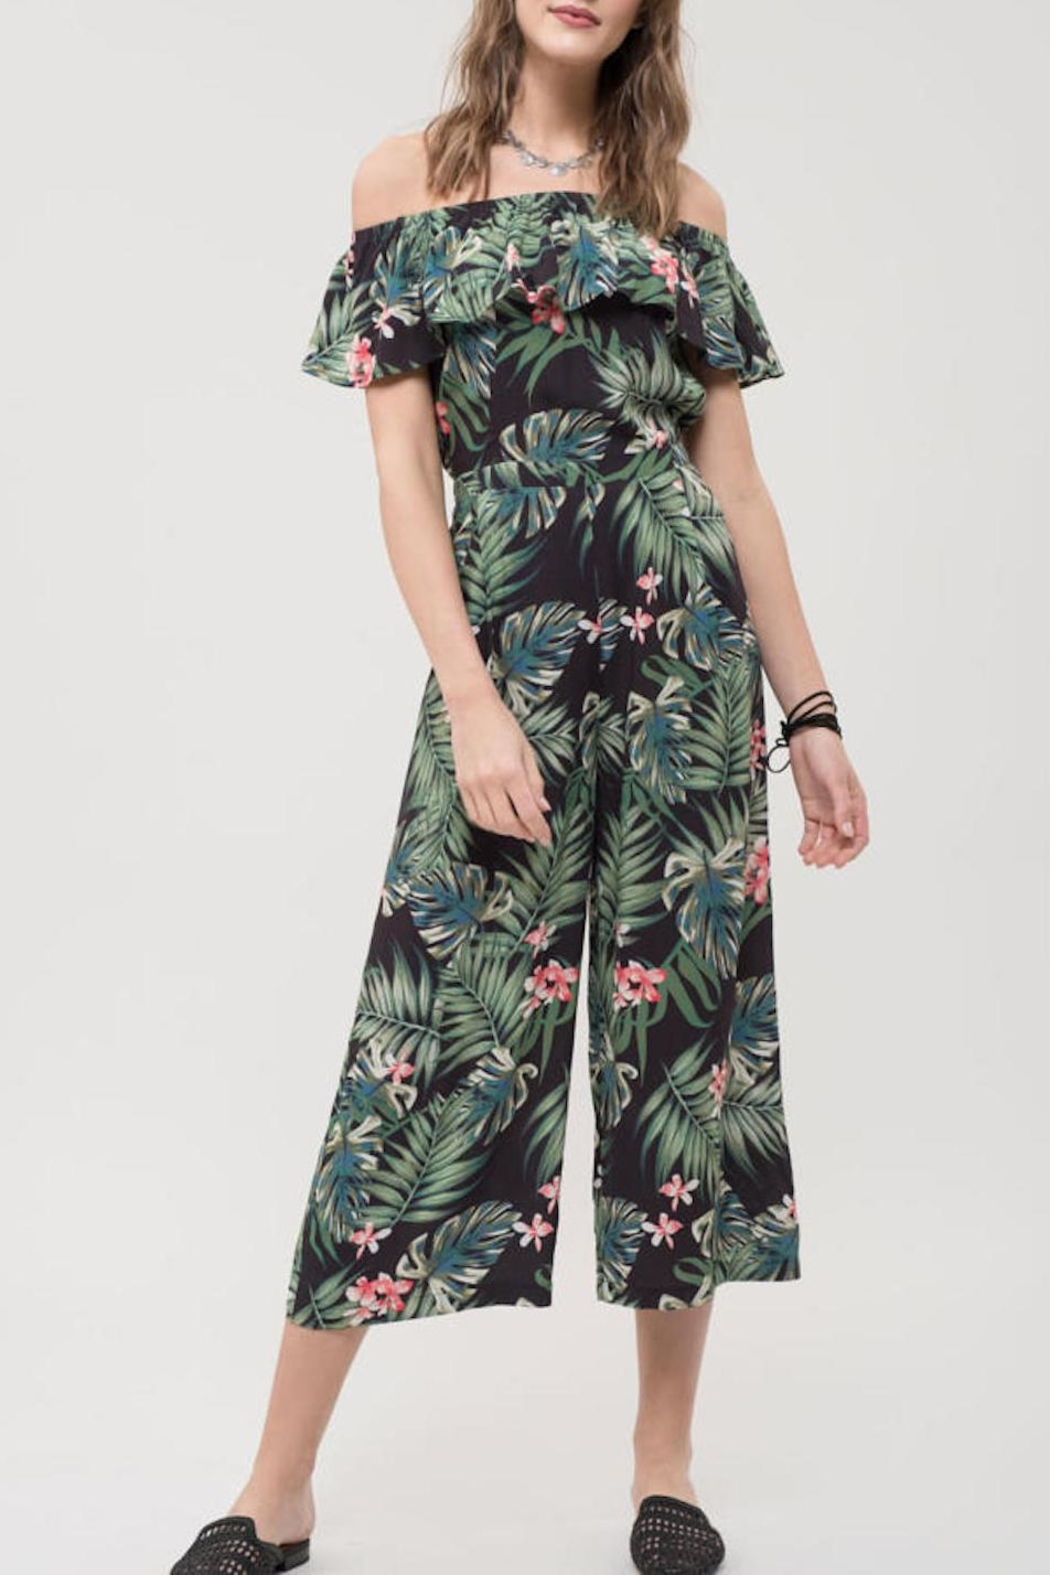 Blu Pepper Tropical Print Jumpsuit - Main Image